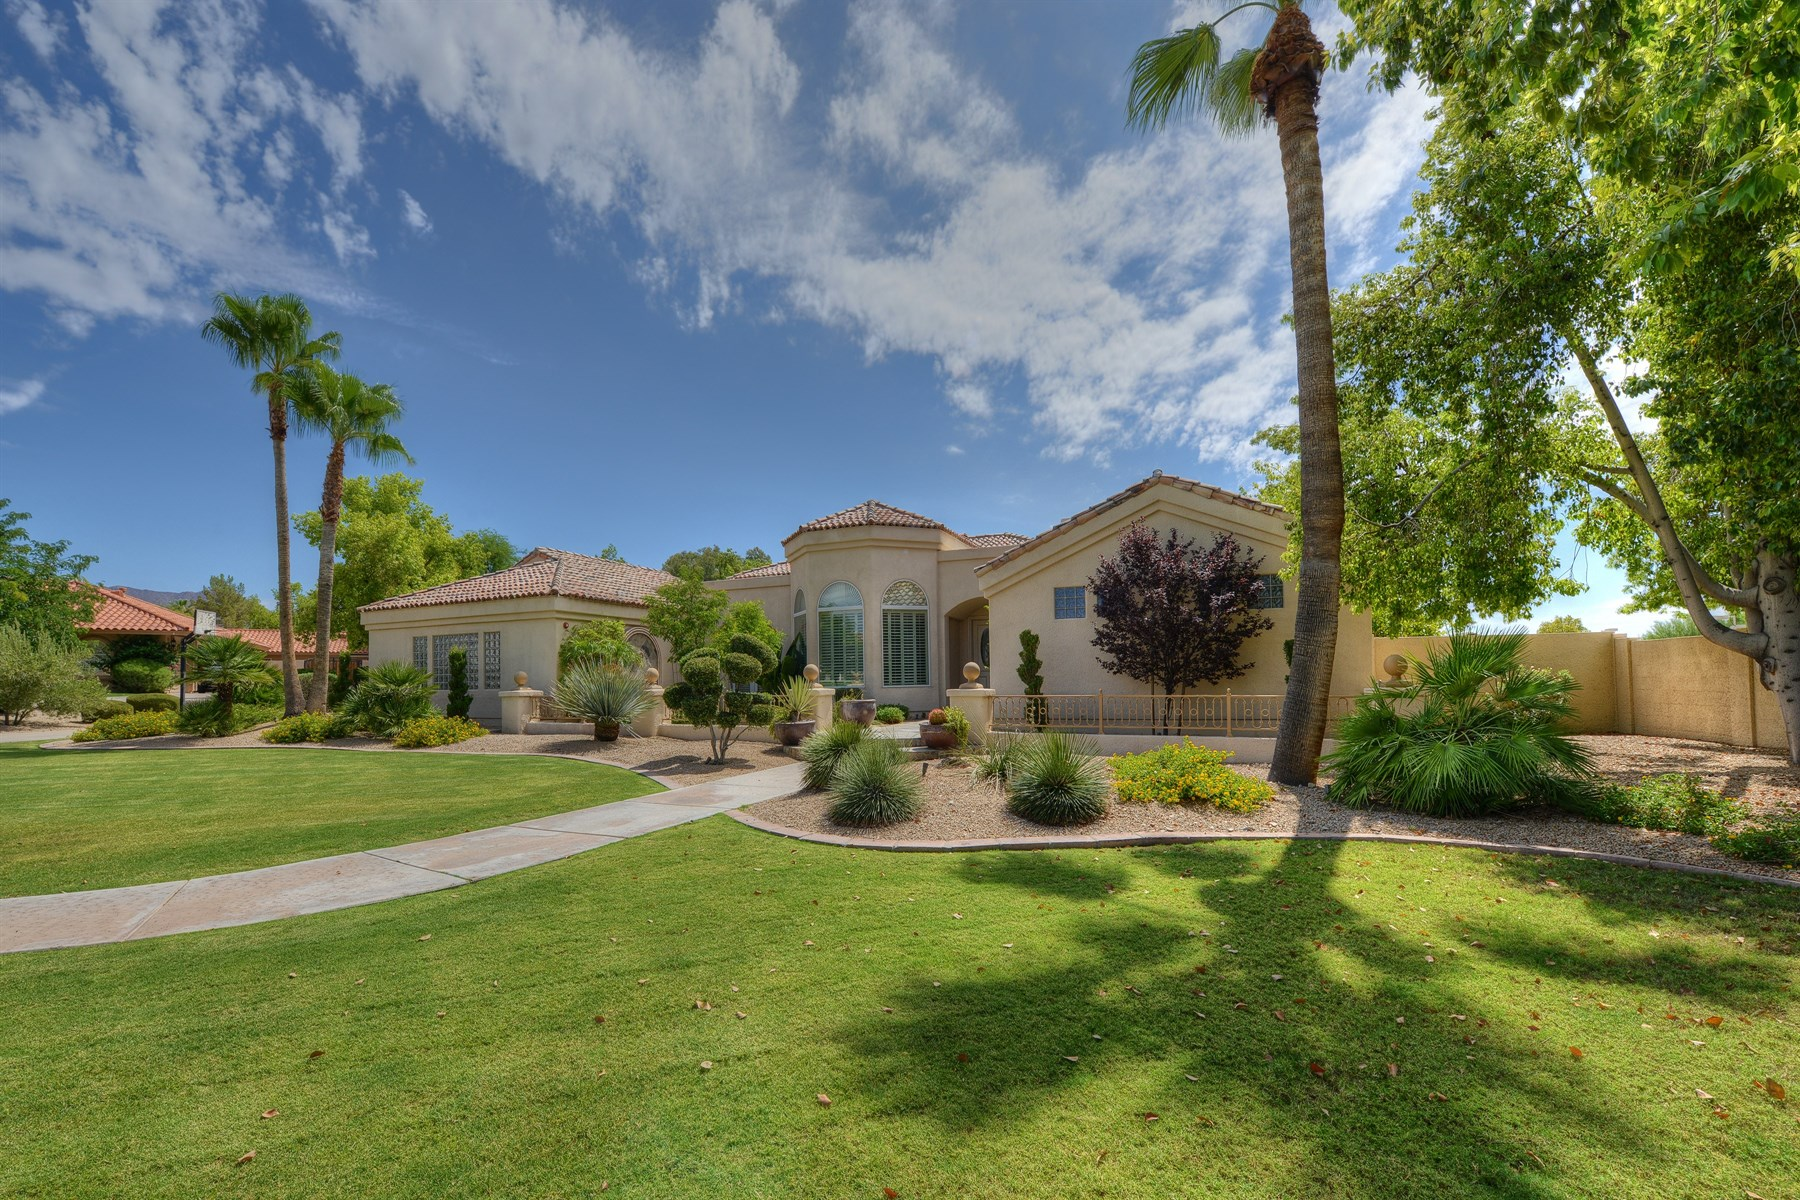 Moradia para Venda às Gorgeous custom estate with four bedrooms and three and a half baths. 12121 N 104TH WAY Scottsdale, Arizona 85259 Estados Unidos